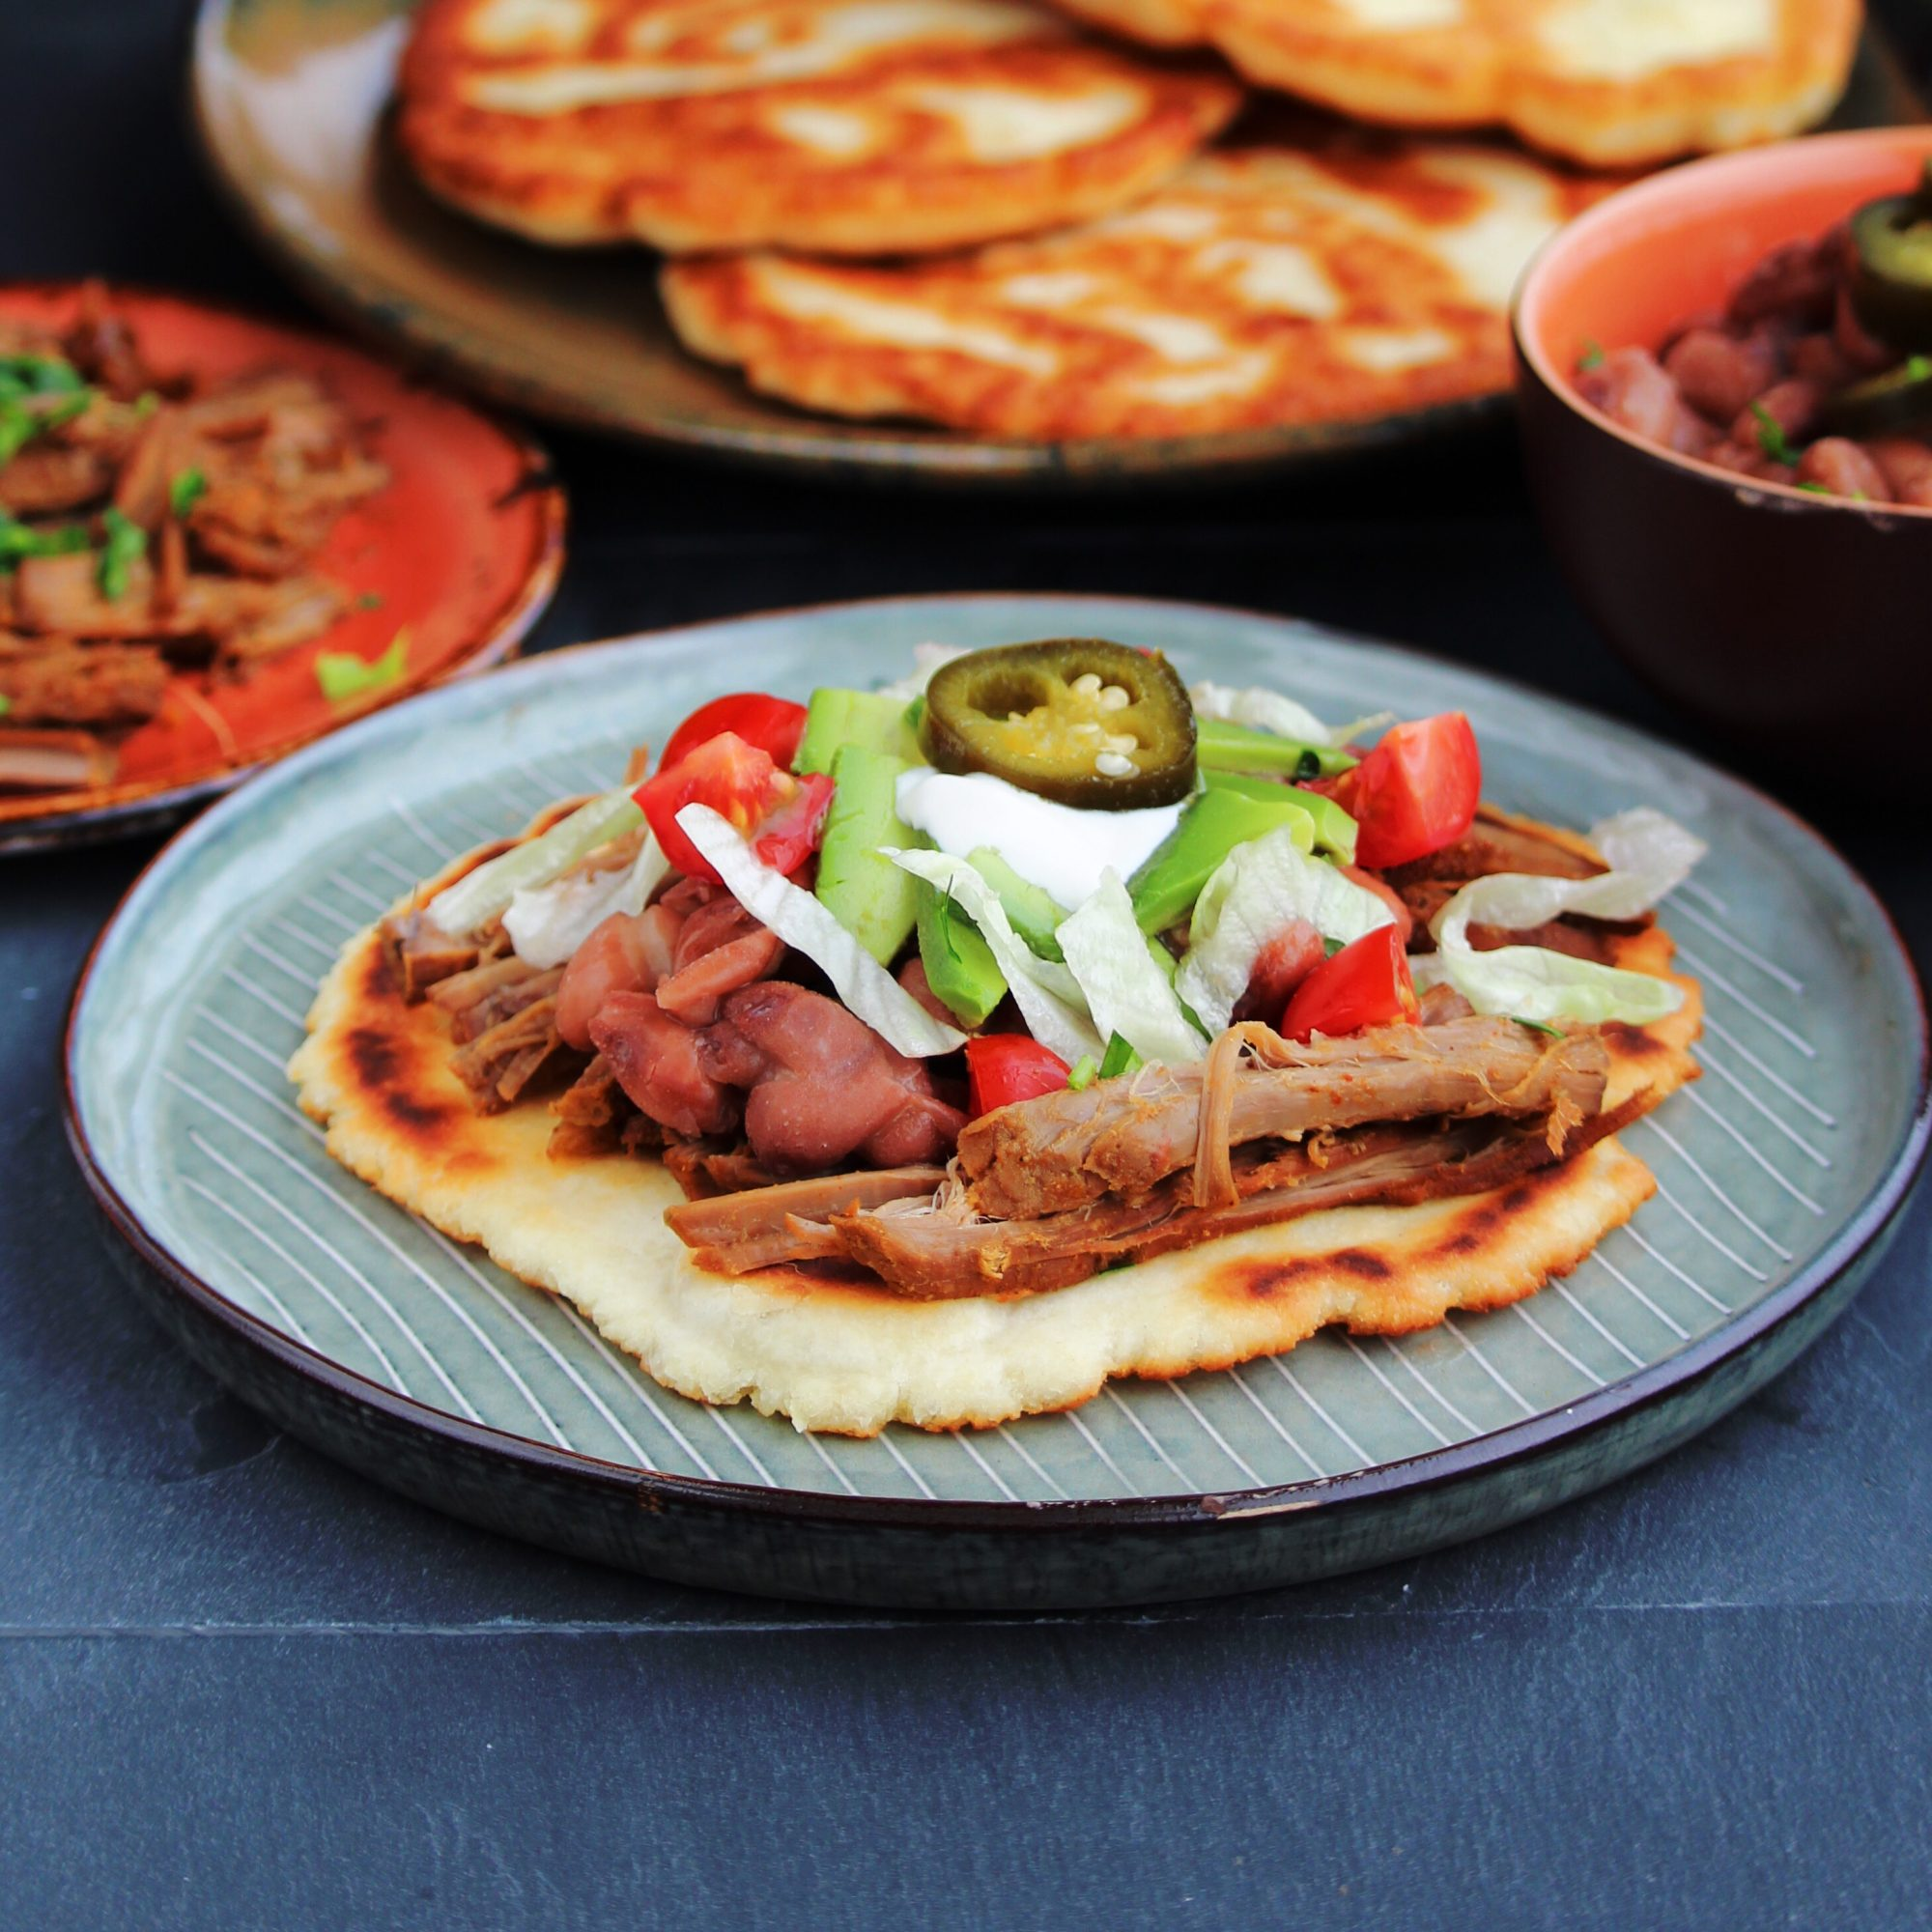 shredded beef with beans and jalapeno on fry bread